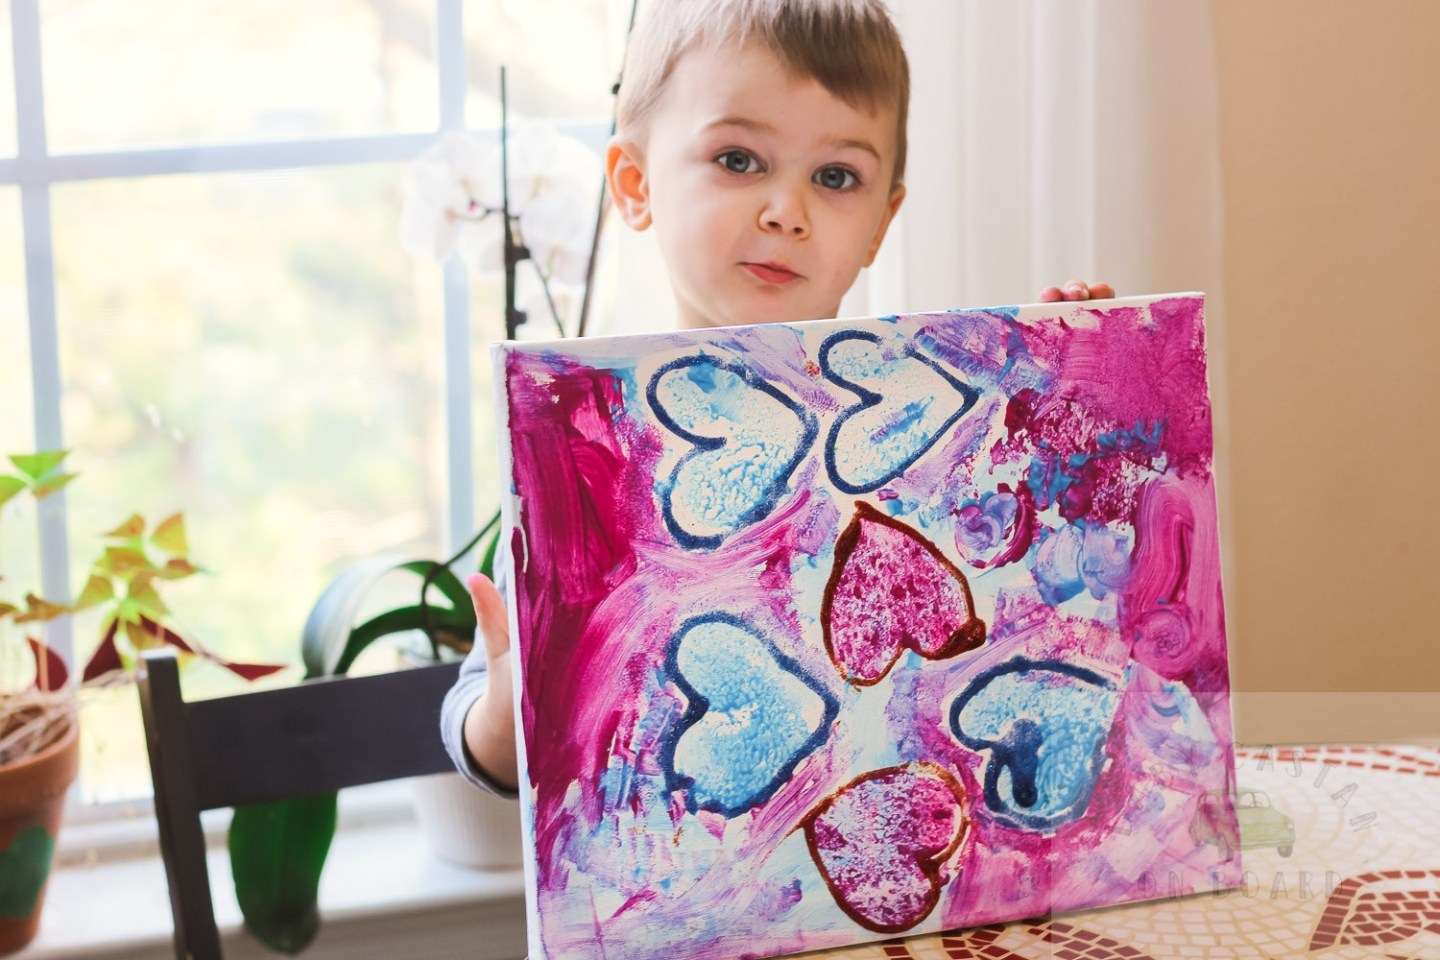 Heart crafts for toddlers_hearts on canvas